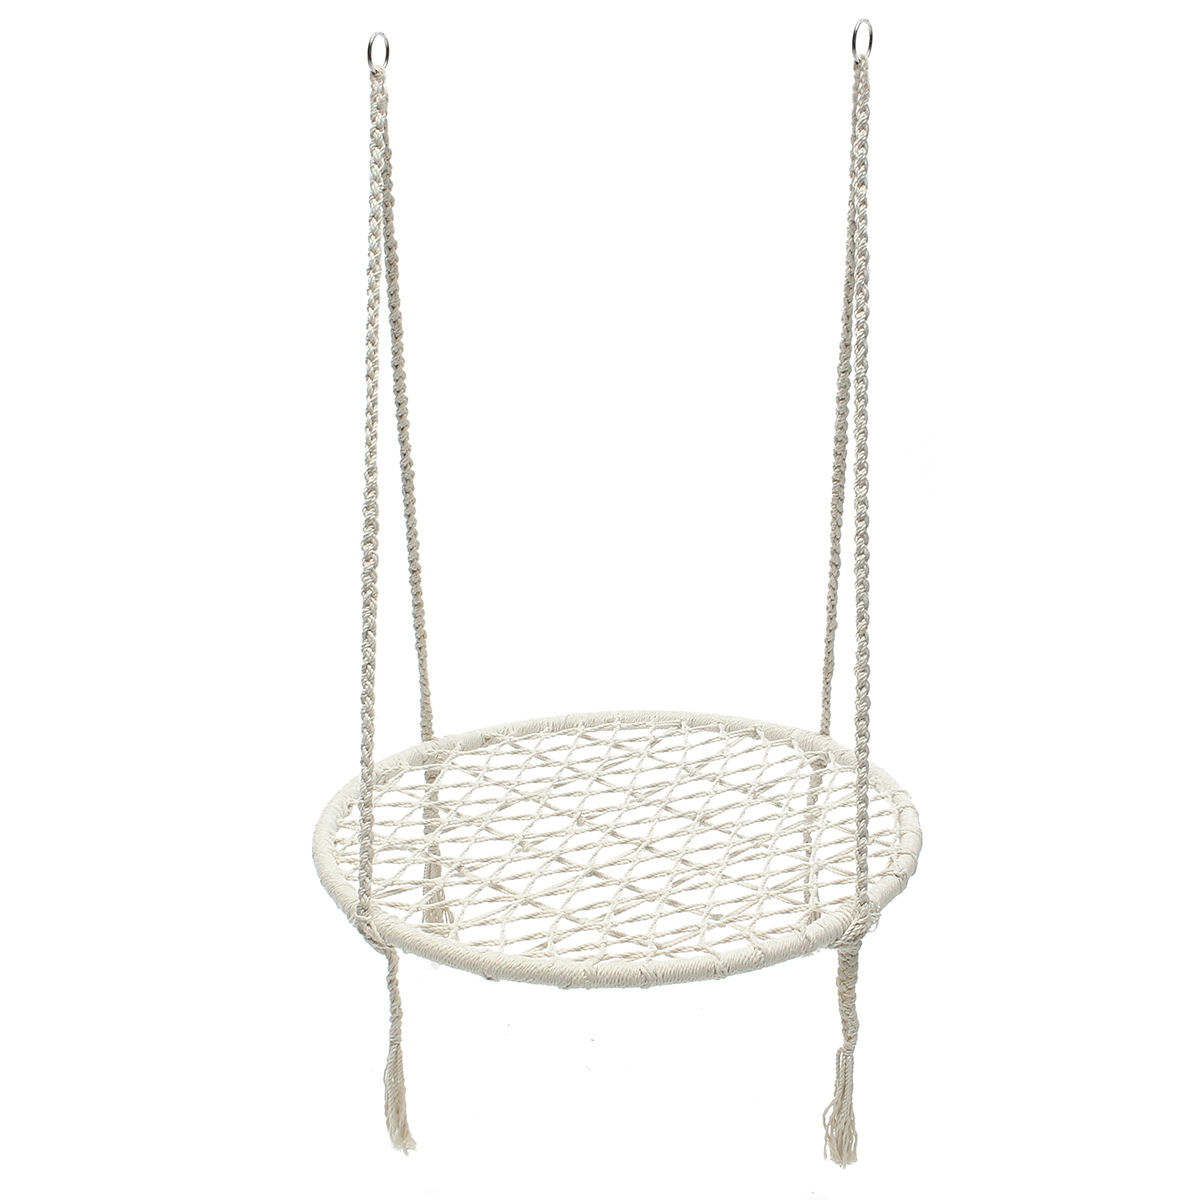 Hanging Rope Hammock Chair Swing Seat Net Chair For Yard Bedroom Patio Porch Indoor Outdoor 220 Pound Capacity